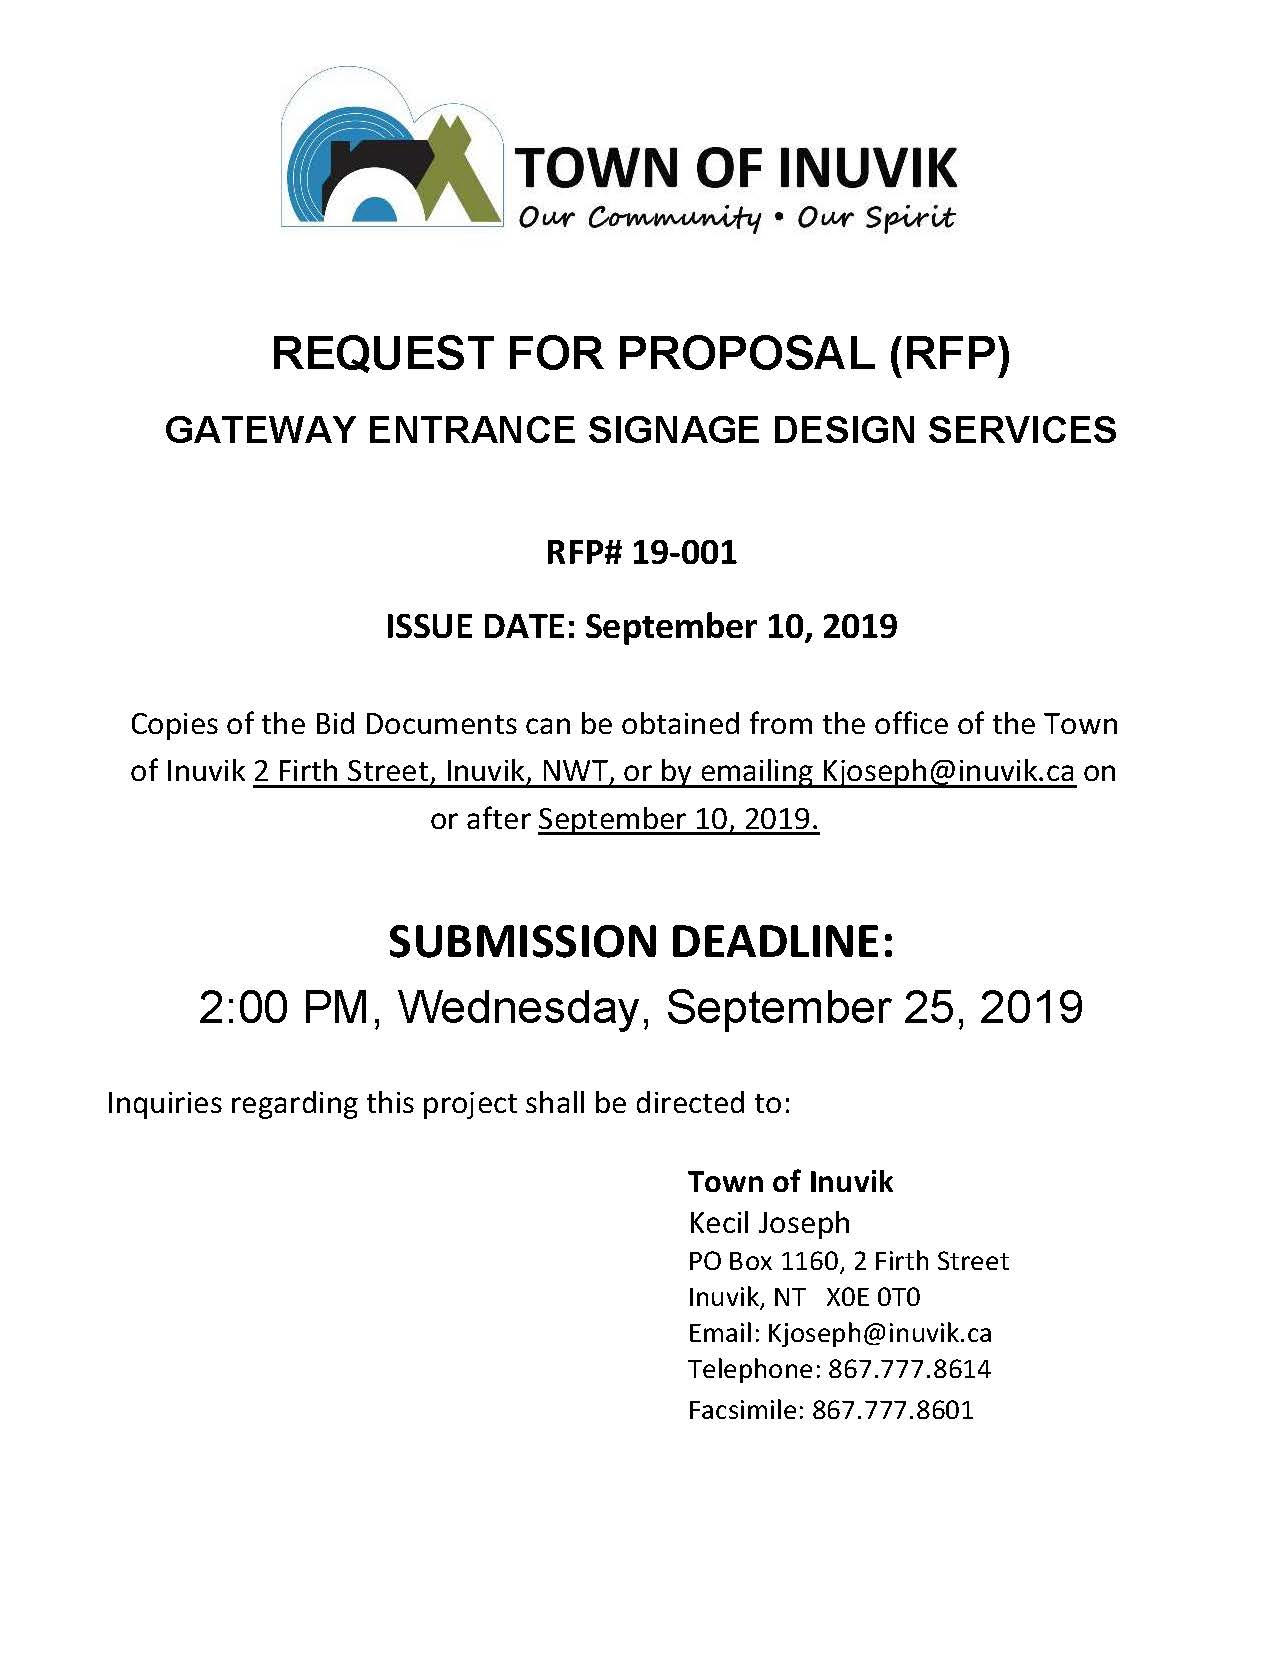 Request For Proposal - Gateway Signage